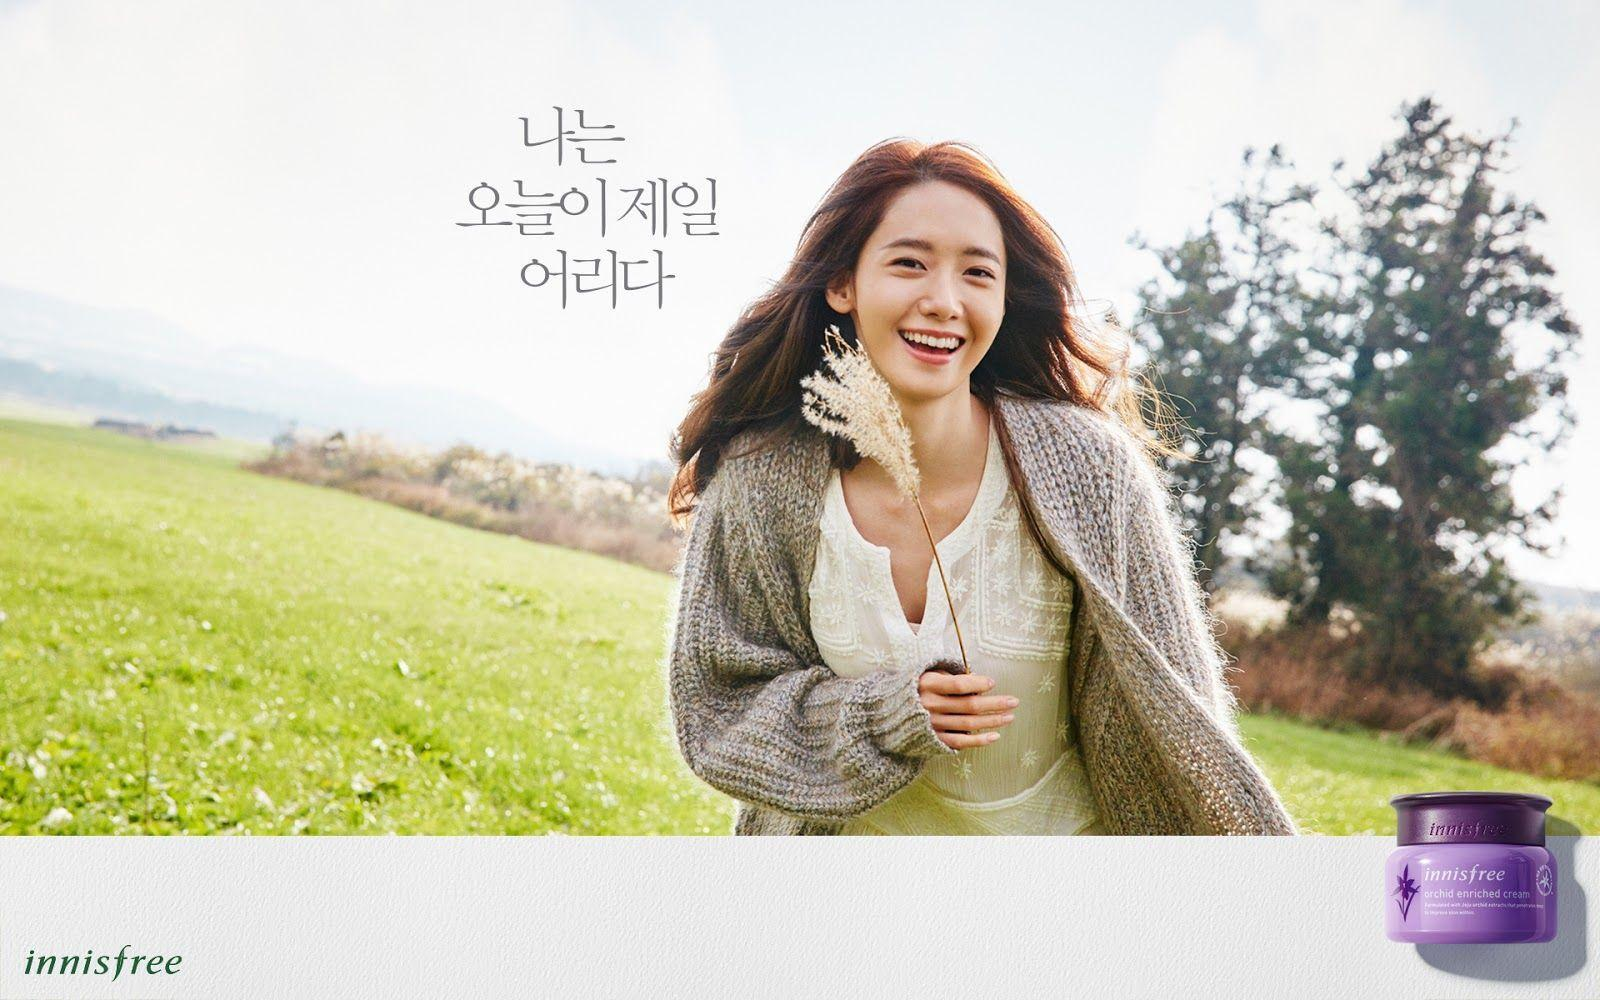 Yoona innisfree 「ORCHID ENRICHED CREAM」 2016 Promotion Wallpapers